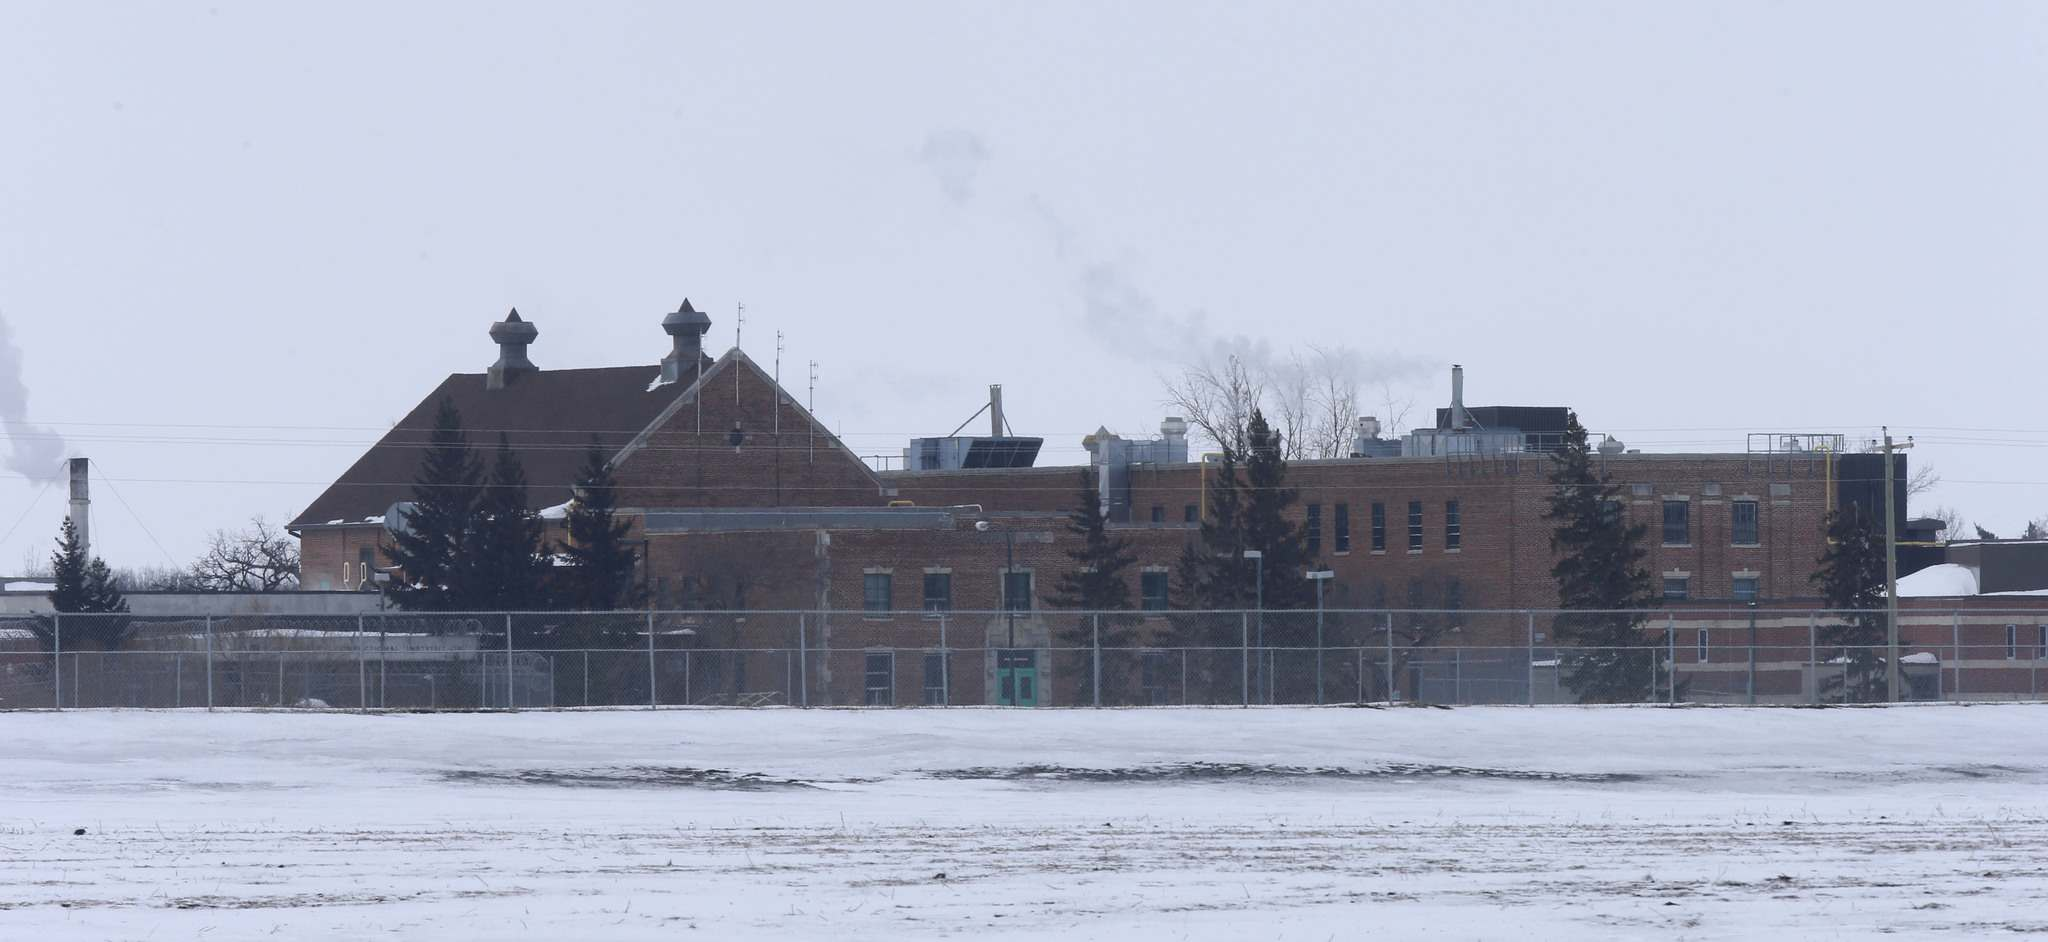 WAYNE GLOWACKI / WINNIPEG FREE PRESS FILES</p><p>Former chief provincial judge Ray Wyant saw a more crowded Headingley Correctional Centre in 2016 compared to his visit 40 years earlier.</p>